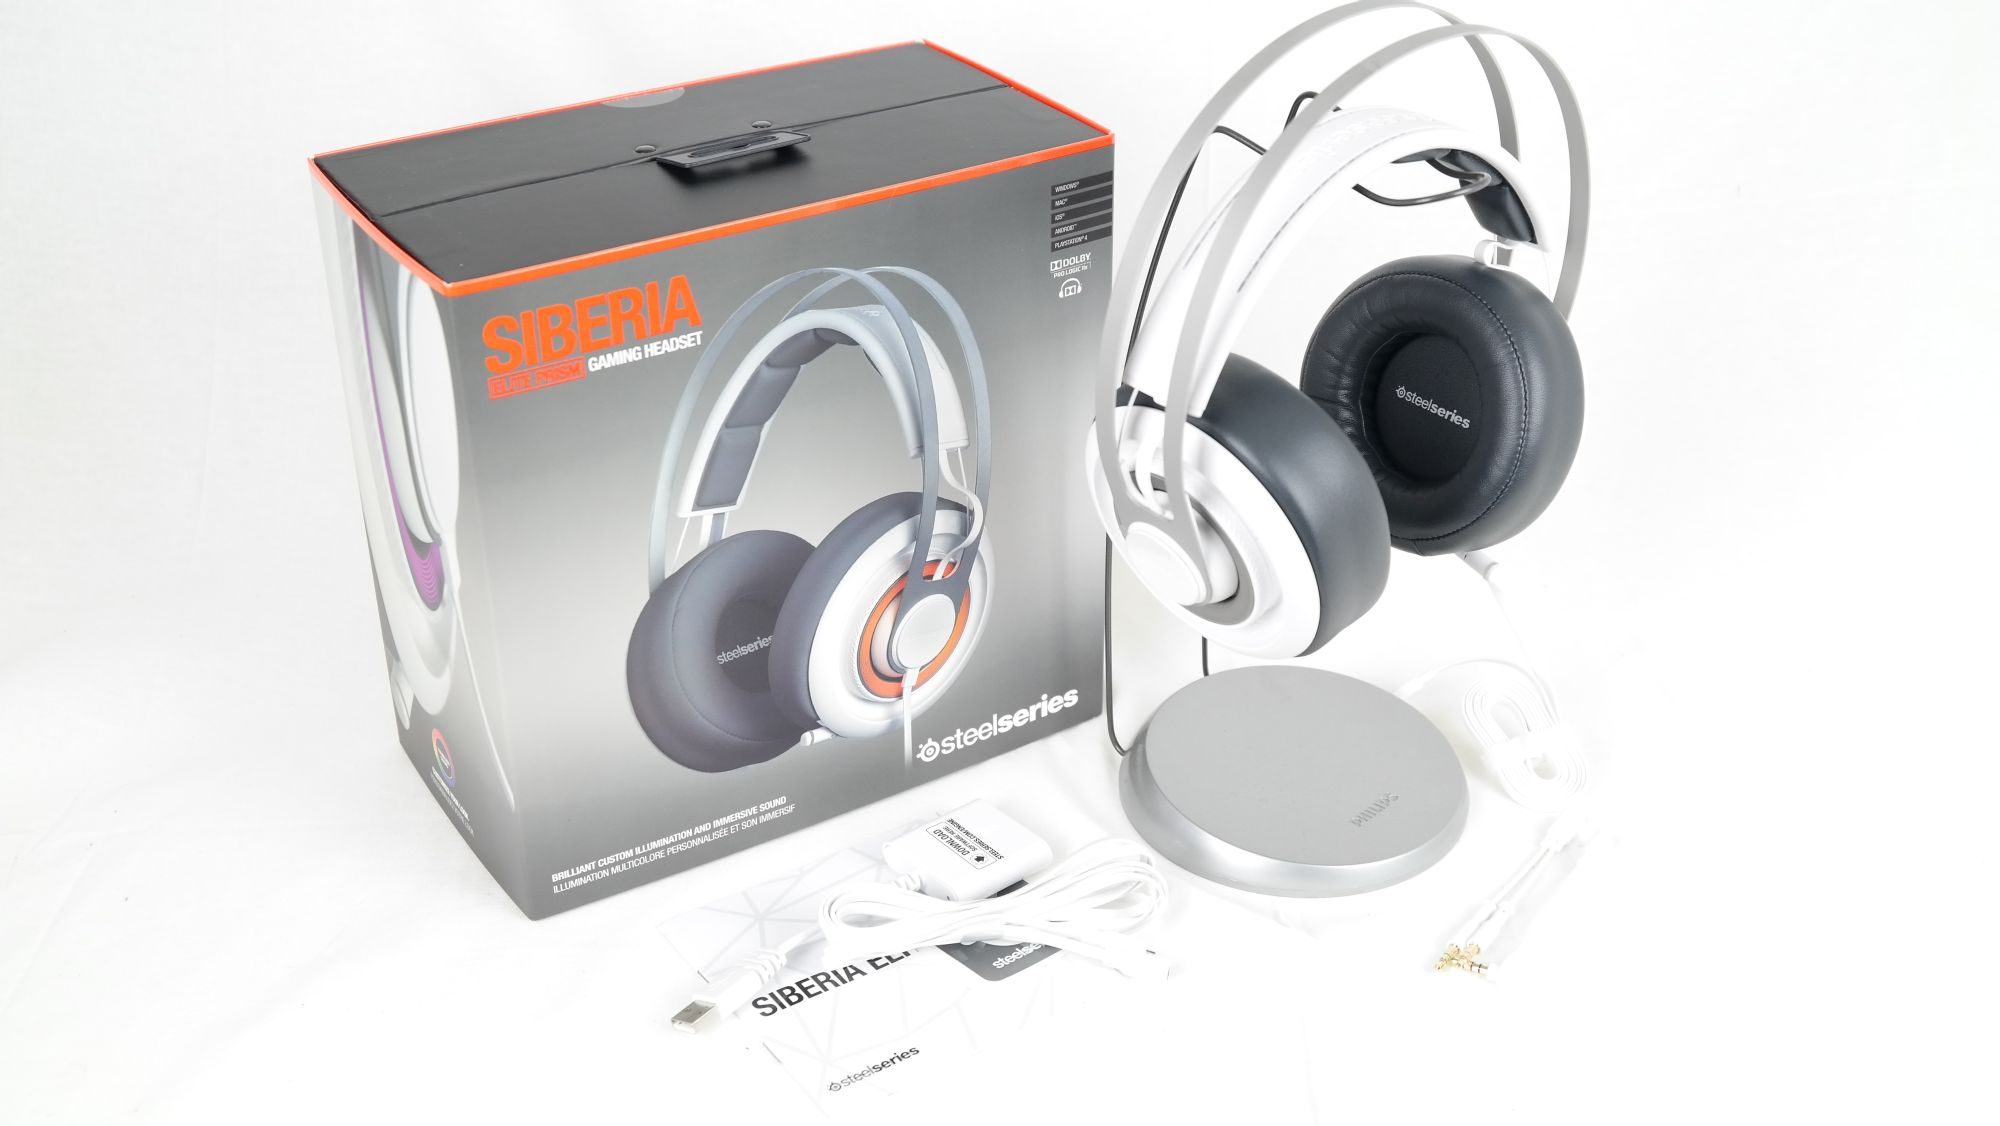 Steelseries_Siberia_Elite_Prism_001